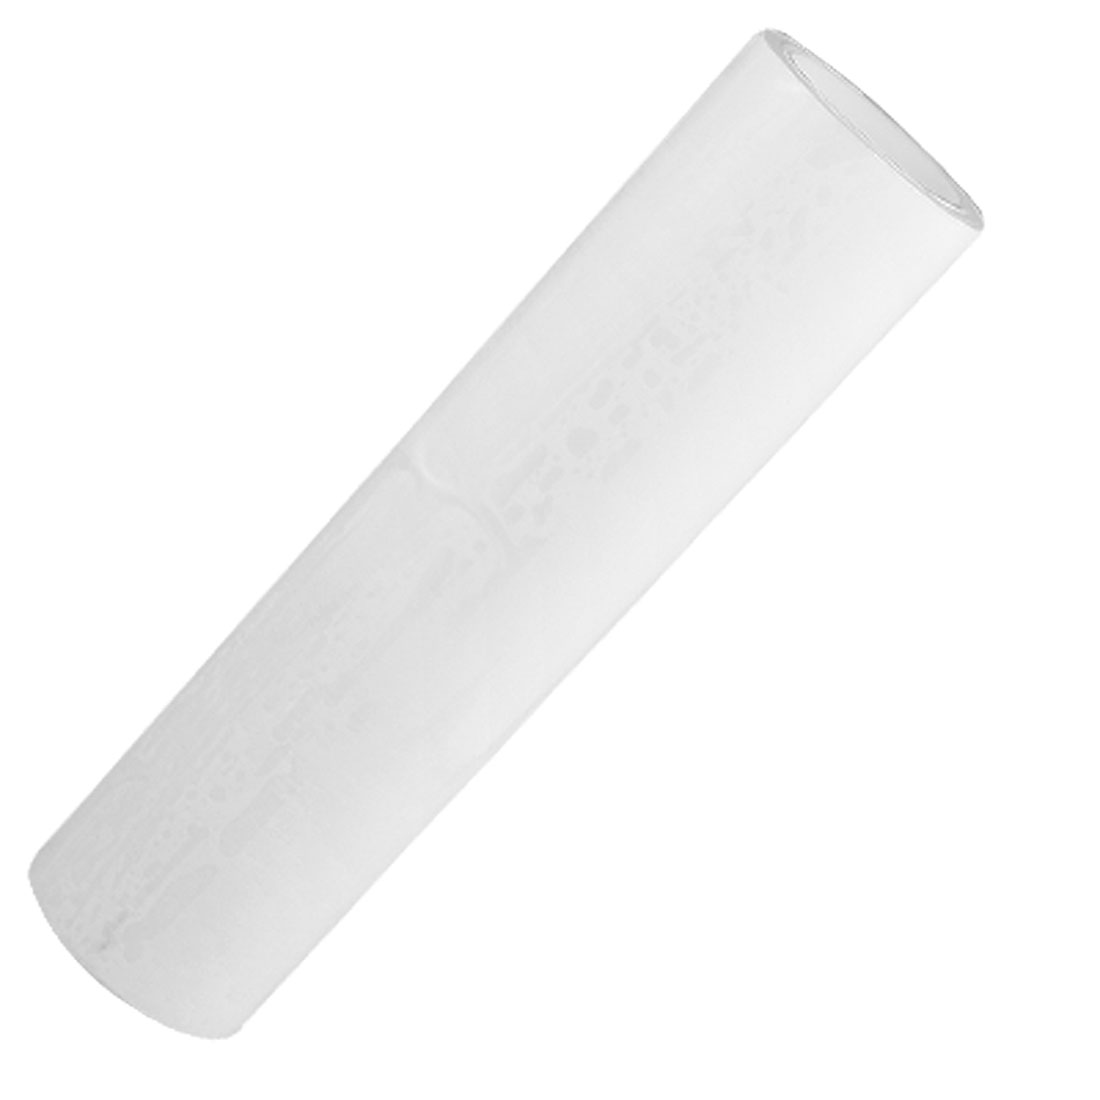 Home Carpet Cleaning Sweep Polypropylene Film Sticky Adhesive Roller 8""